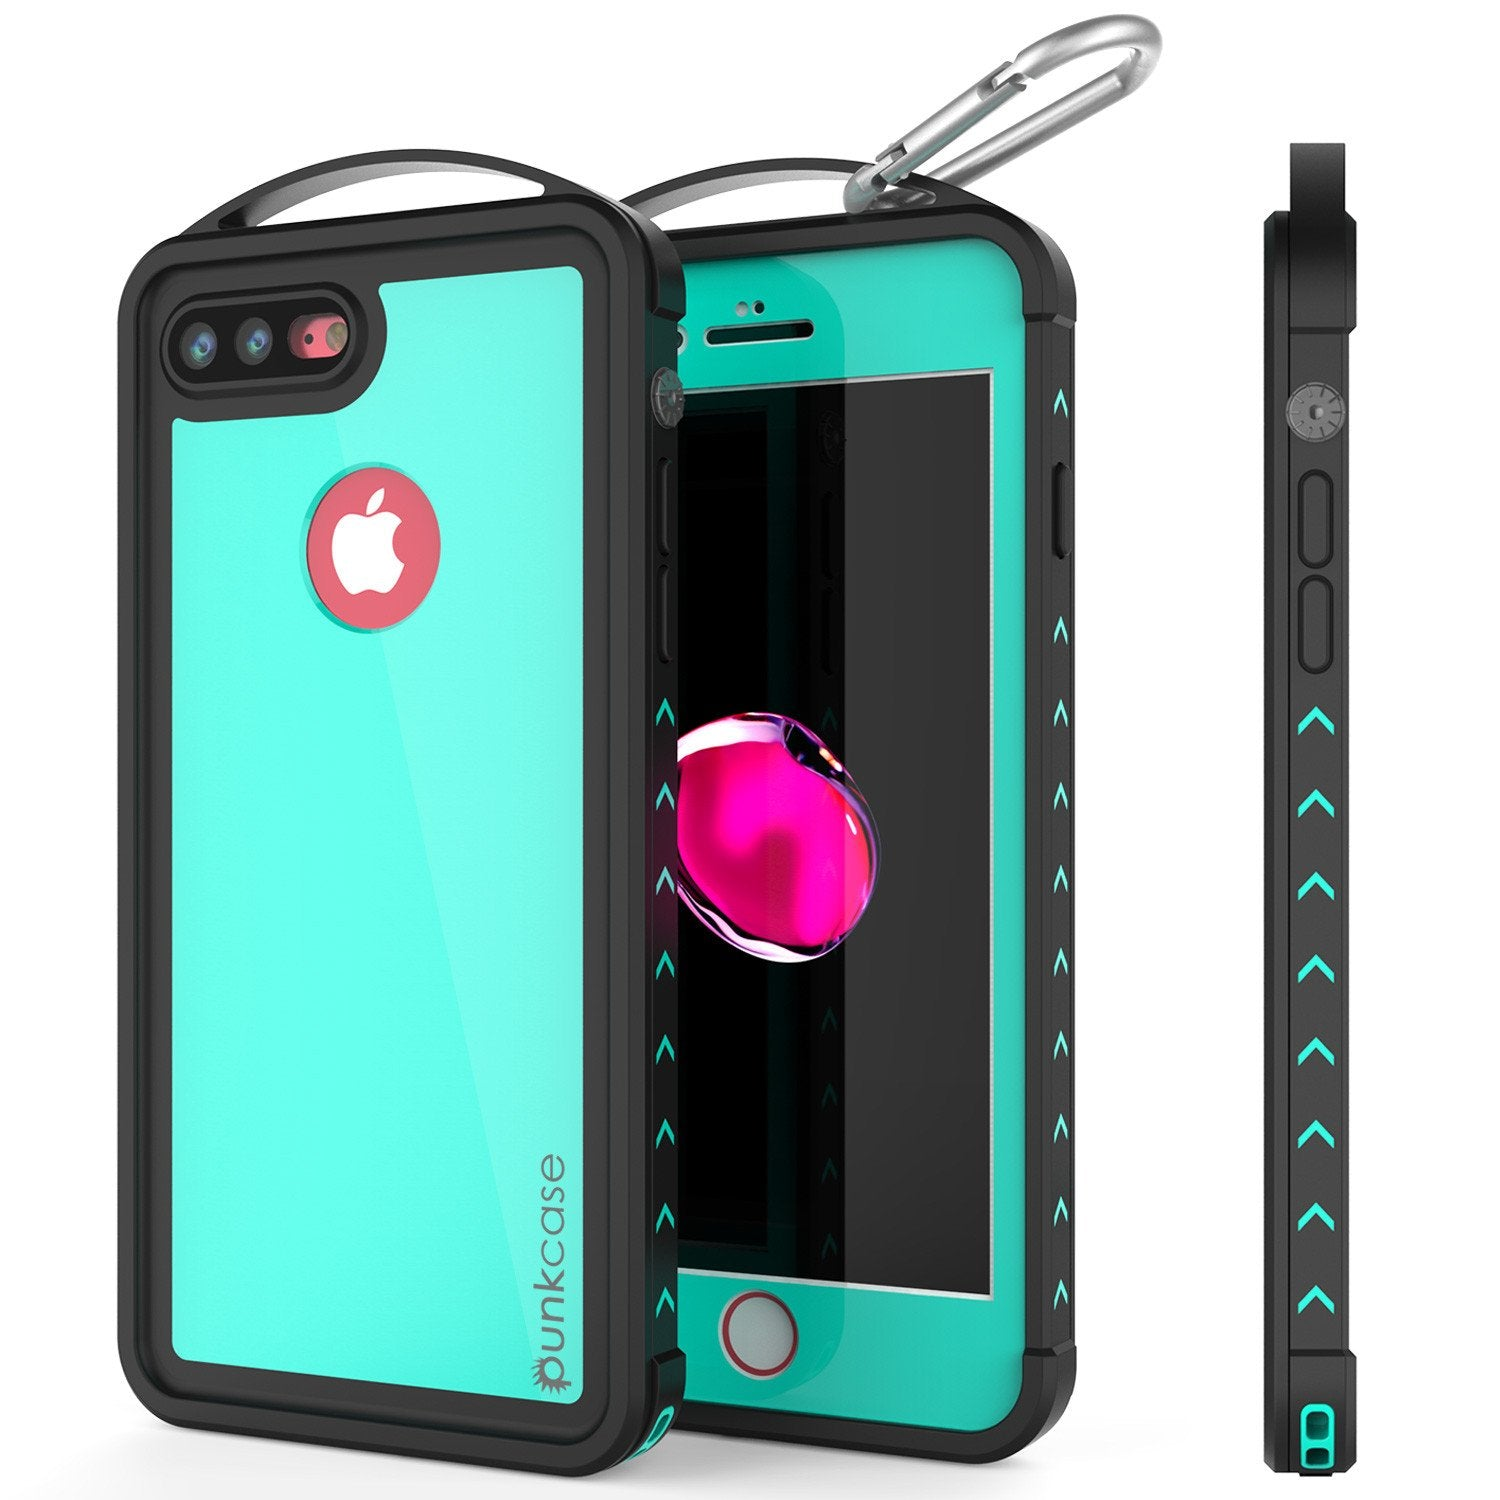 iPhone 8+ Plus Waterproof Case, Punkcase ALPINE Series, Teal | Heavy Duty Armor Cover